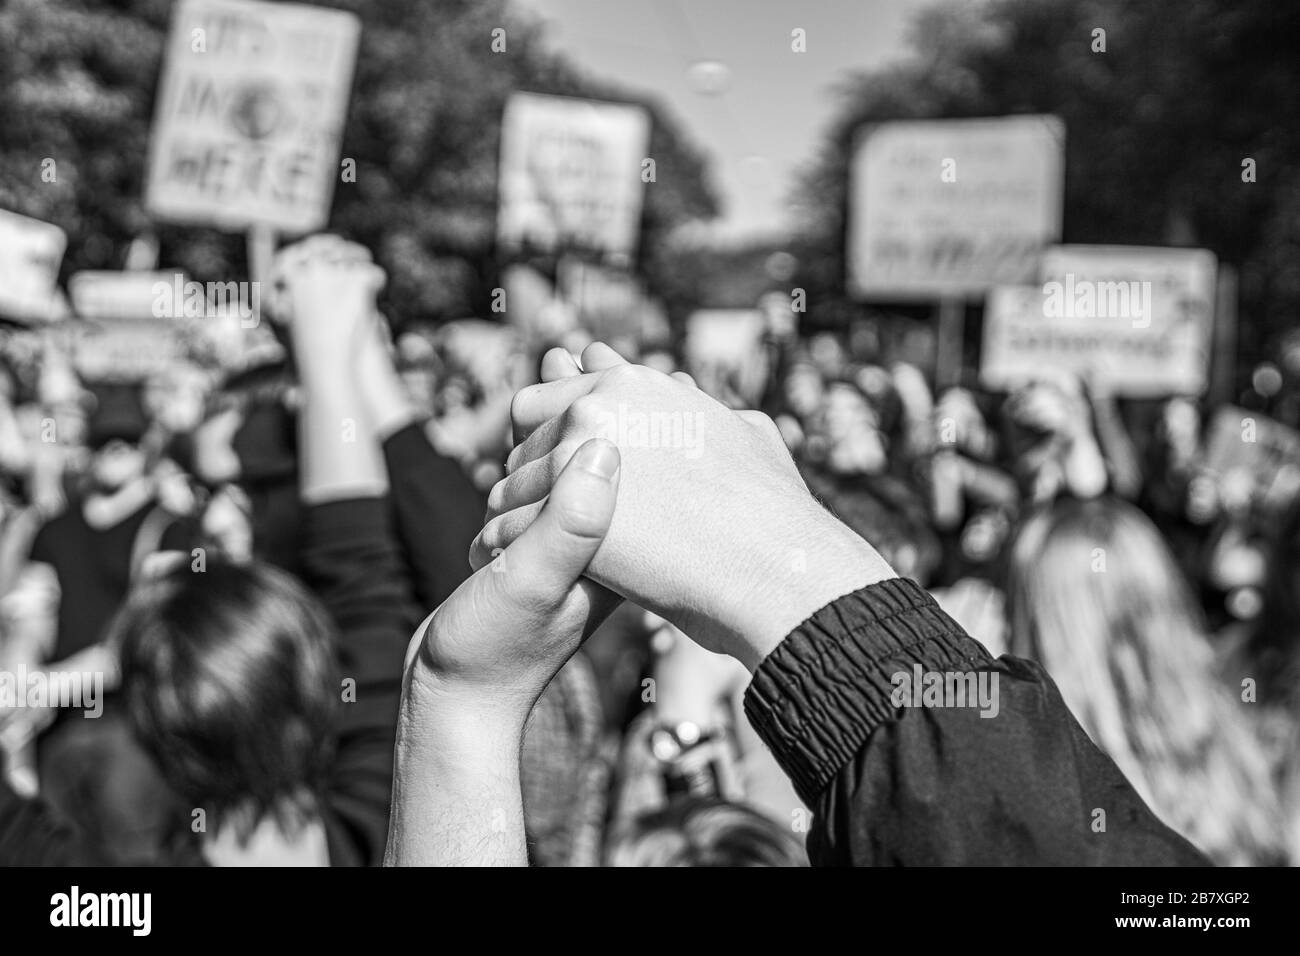 photograph in black and white of two people joining hands together at a fridays for future protest regarding climate change, symbolizing strength Stock Photo